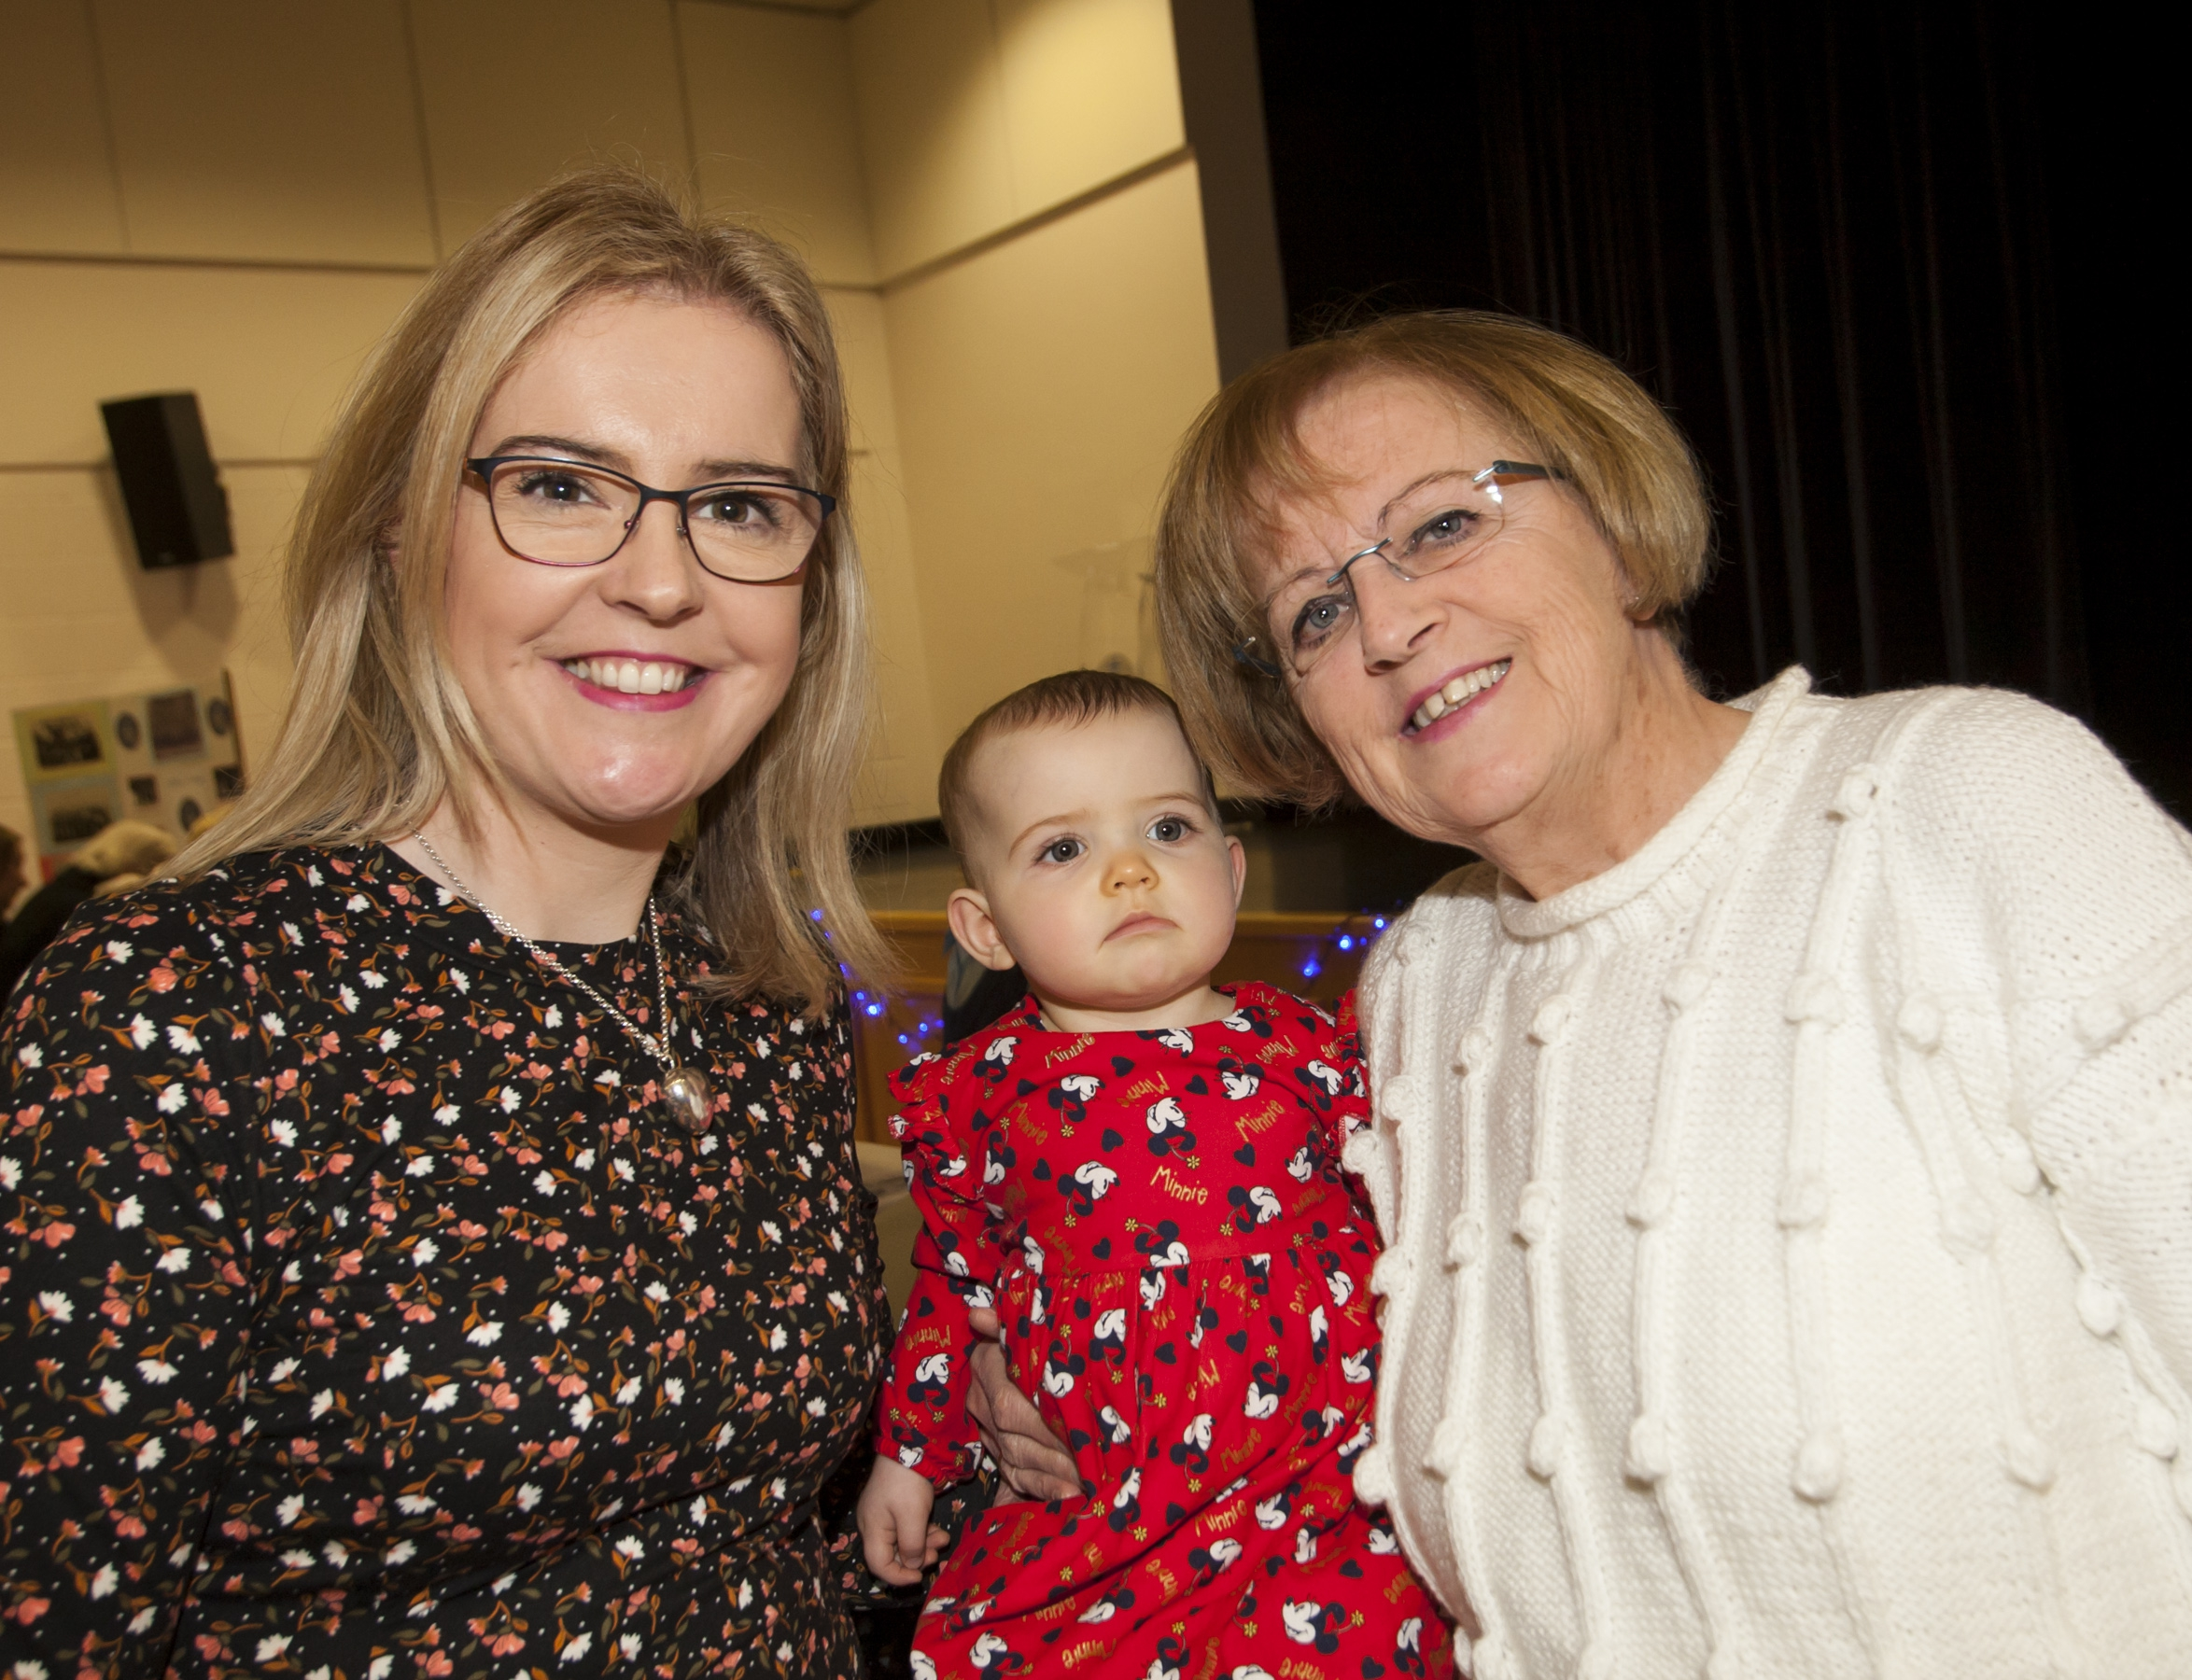 St. Mary's College staff member Kathryn McLaughlin pictured with her 10 months old daughter Lucy and her mum Margaret Callaghan at Friday's exhibition.